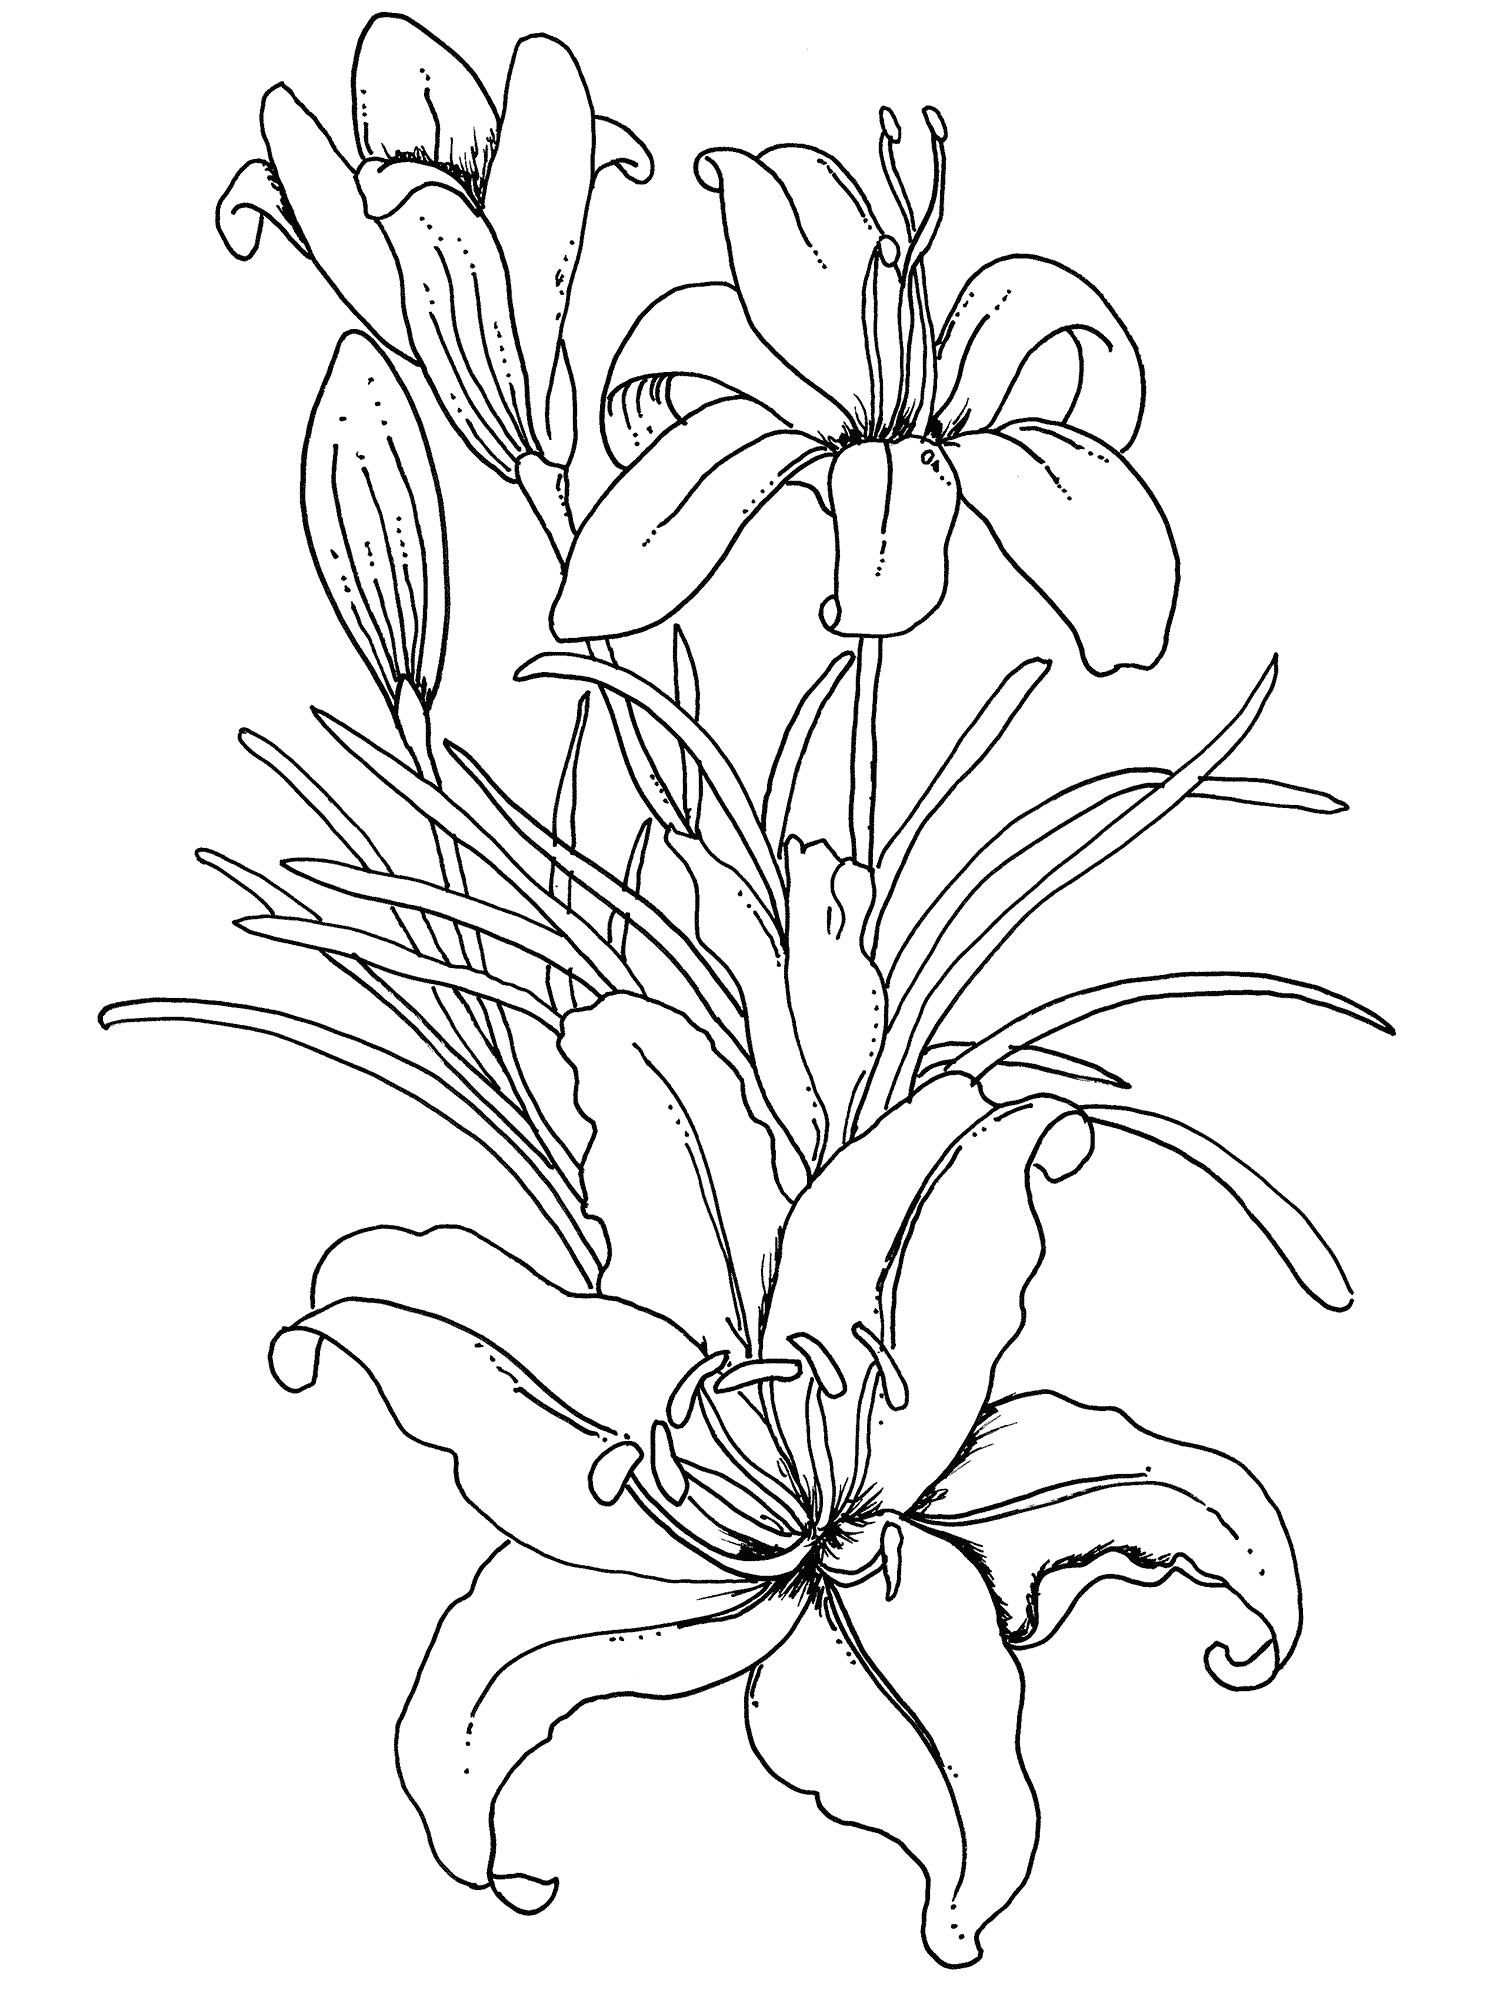 Adult Coloring Books Flowers | Adult Coloring Books | Pinterest ...